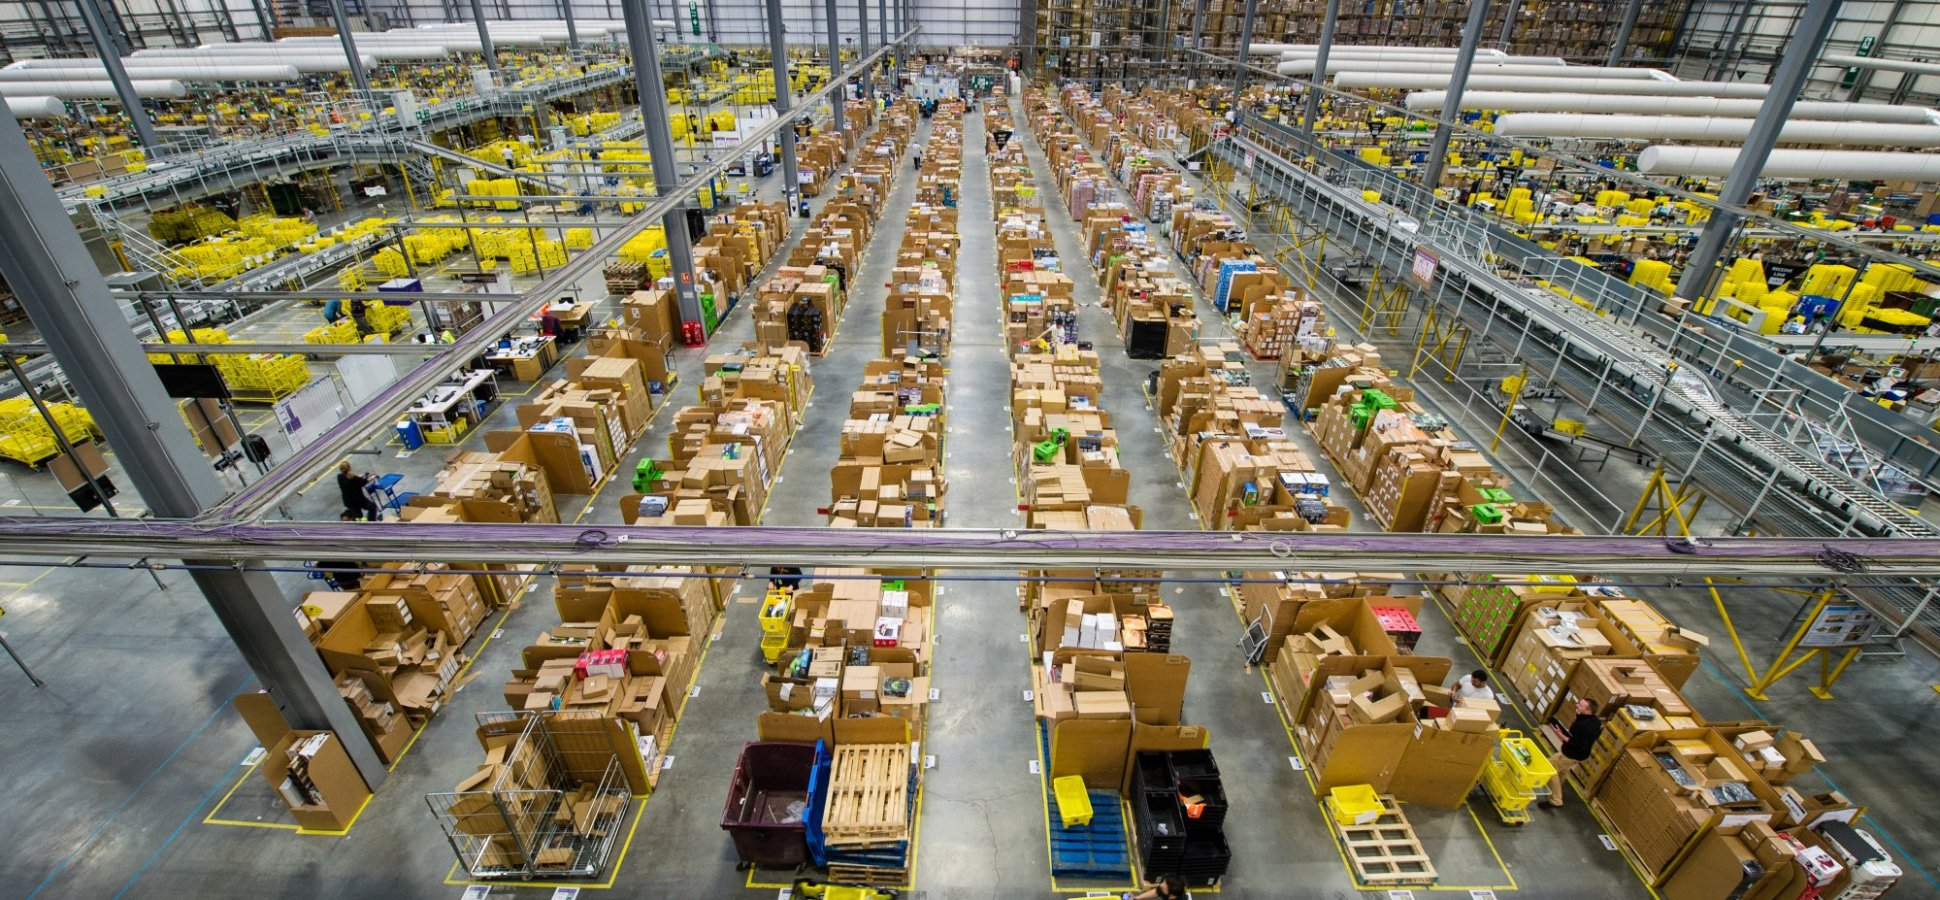 Catchy Cities Courting Amazon Risk Losing Out On Or Deals Warehouse Deals Inc Book Rental Warehouse Deals Inc Reviews dpreview Warehouse Deals Inc